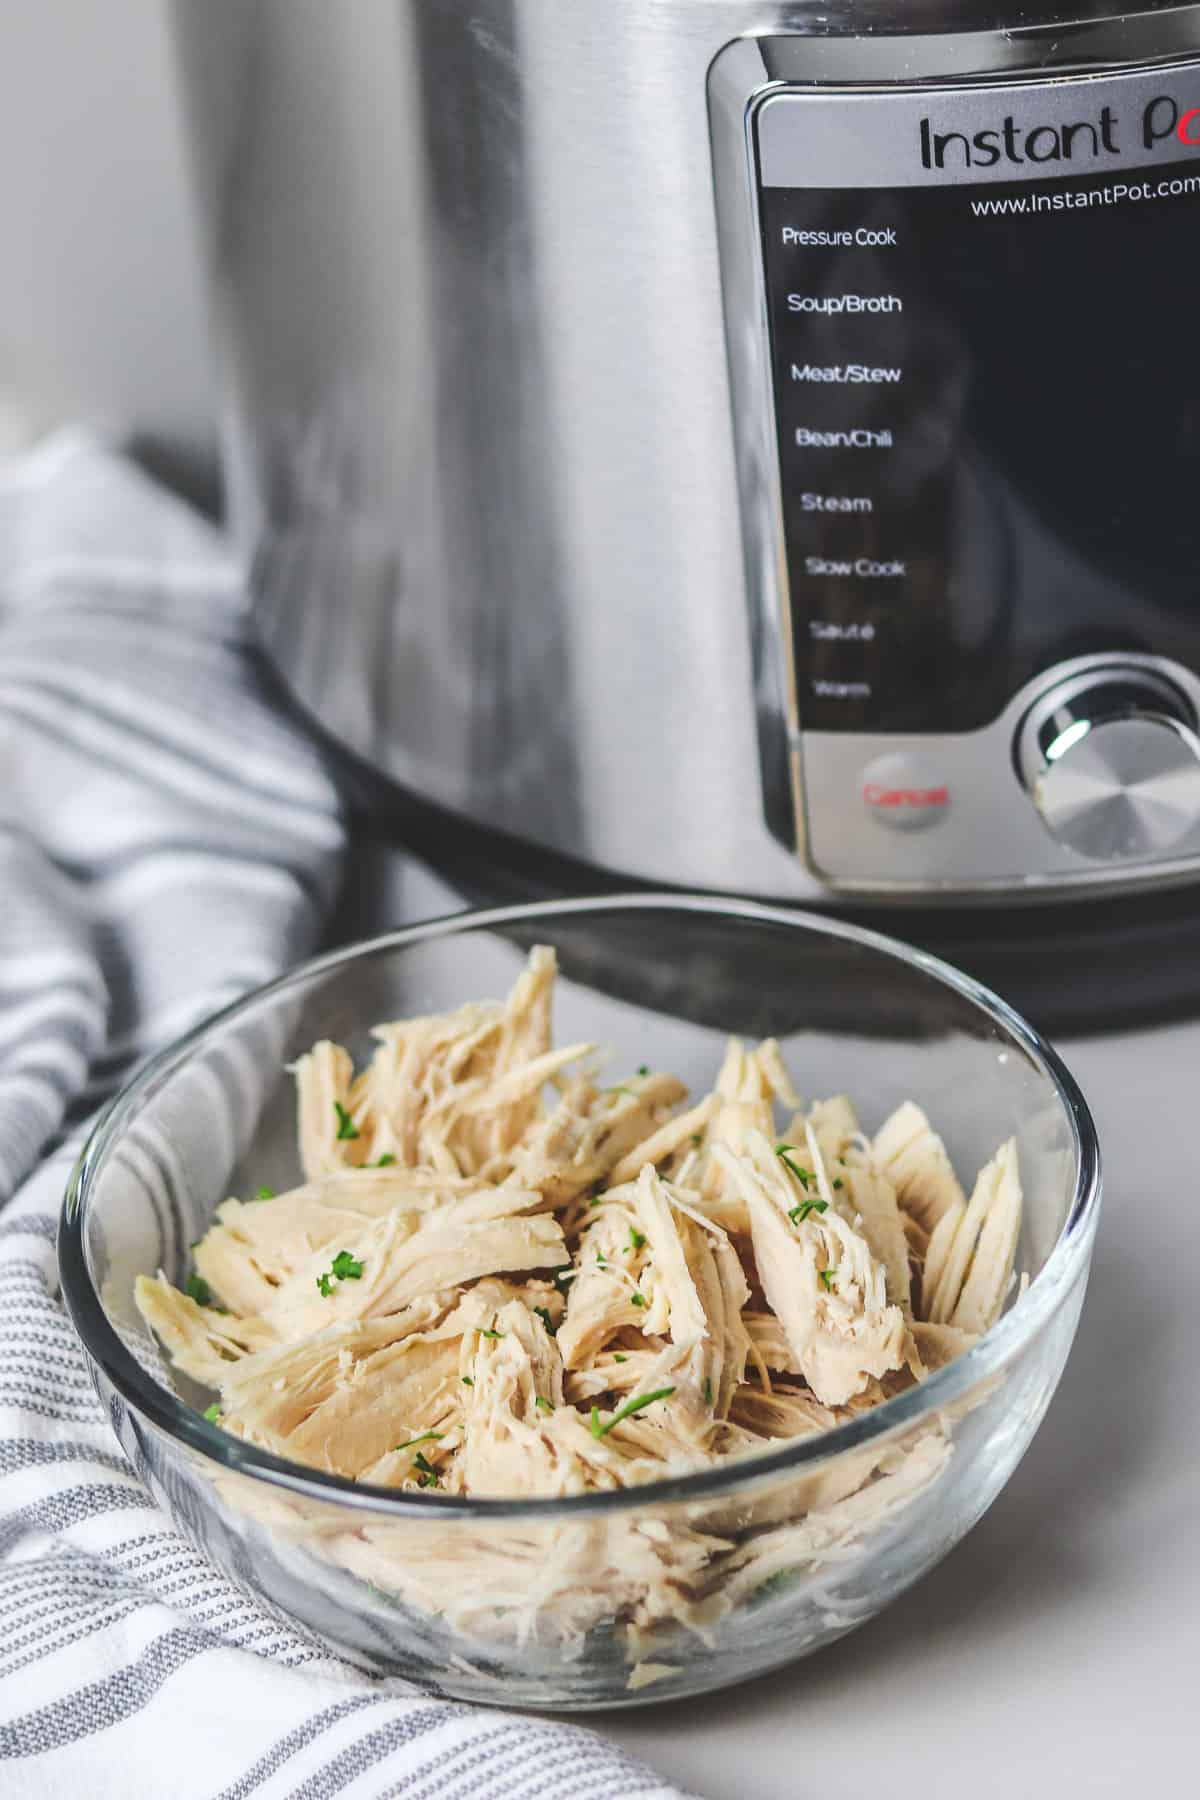 bowl of shredded chicken in front of the instant pot